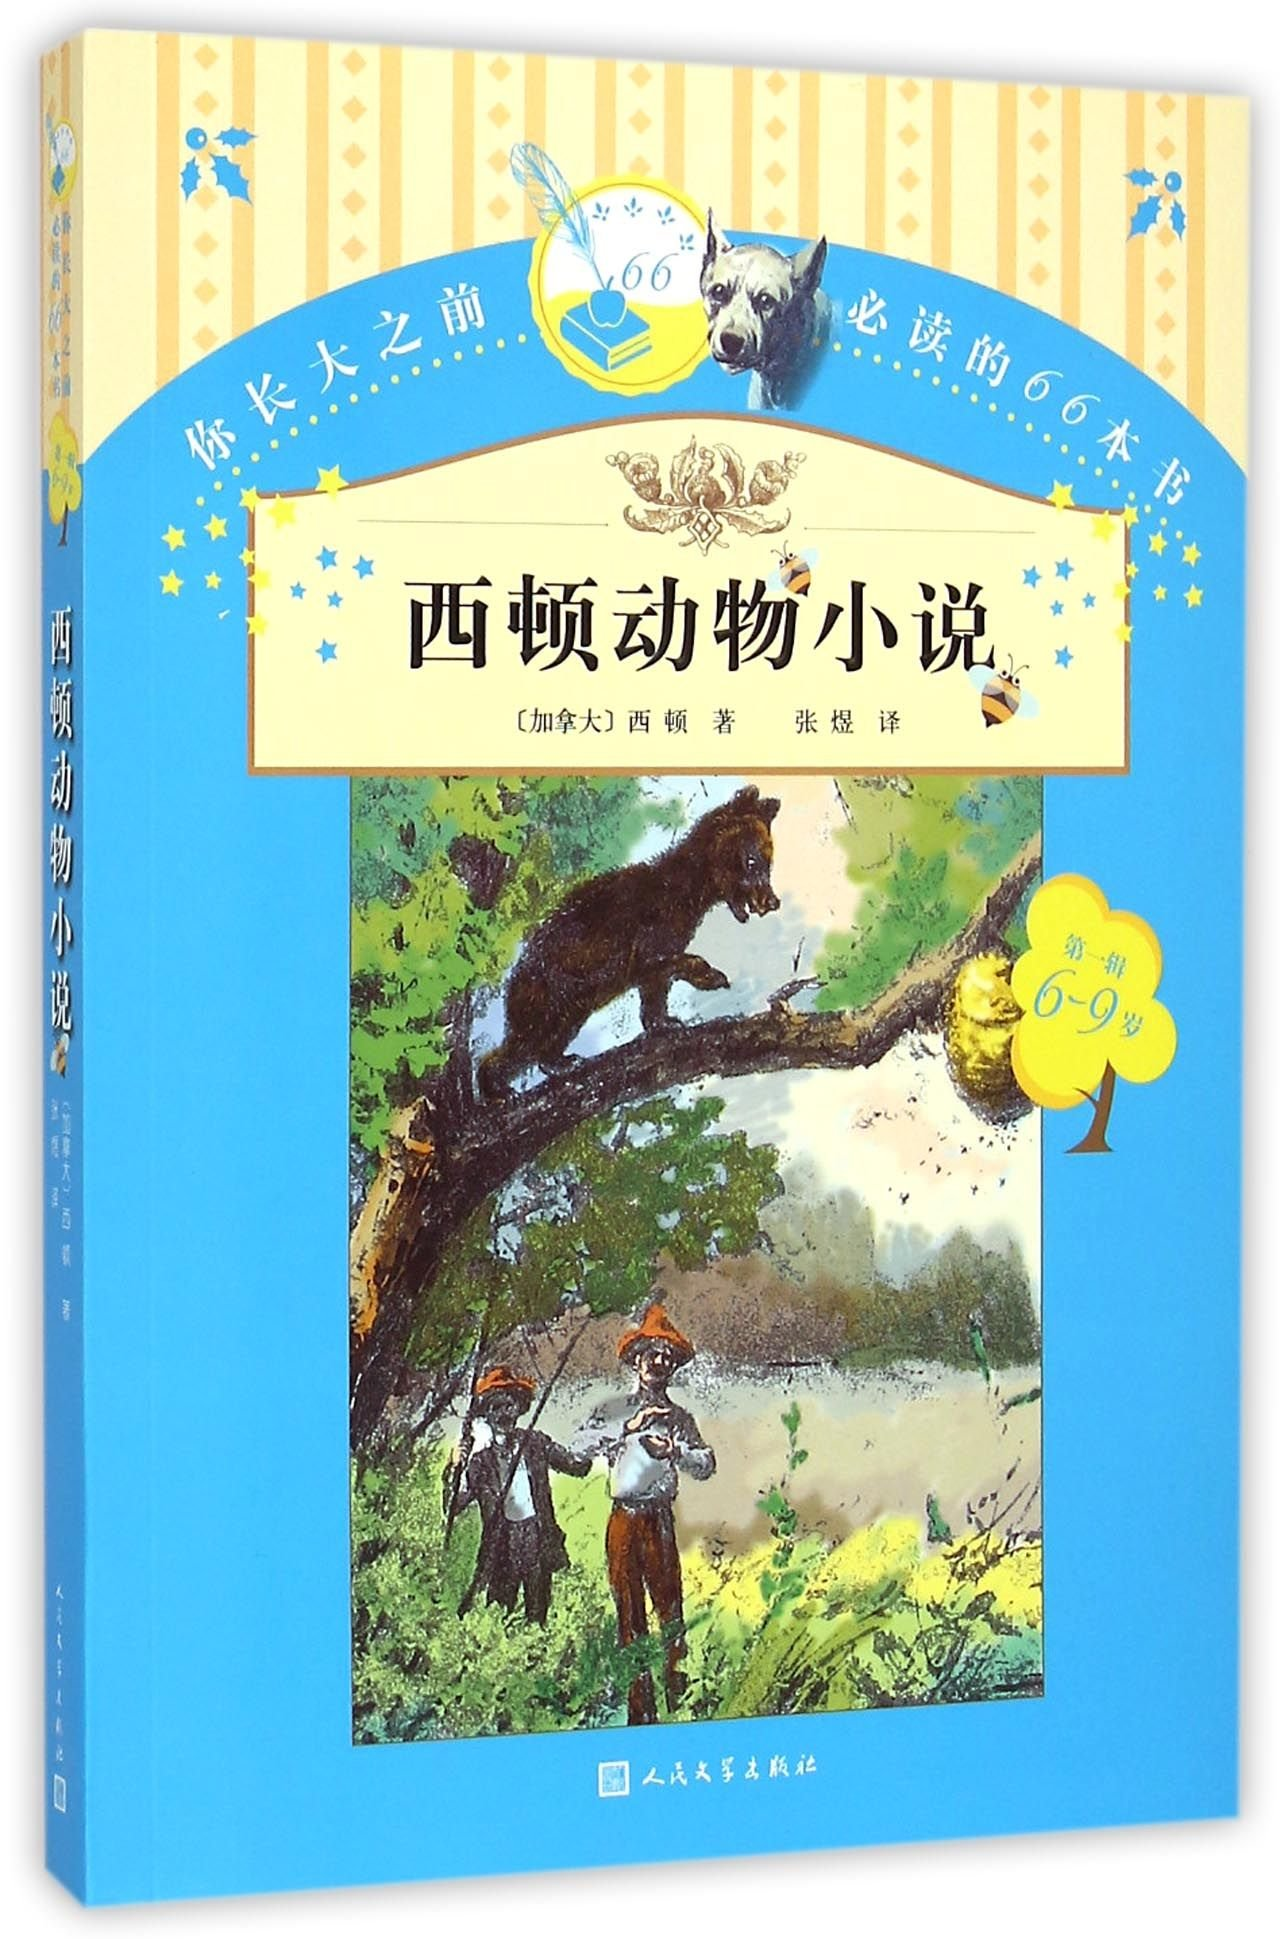 Setons Animal Fictions (For Children Aged 6-9) (66 Books You Must Read Before Growing Up) (Chinese Edition) ebook